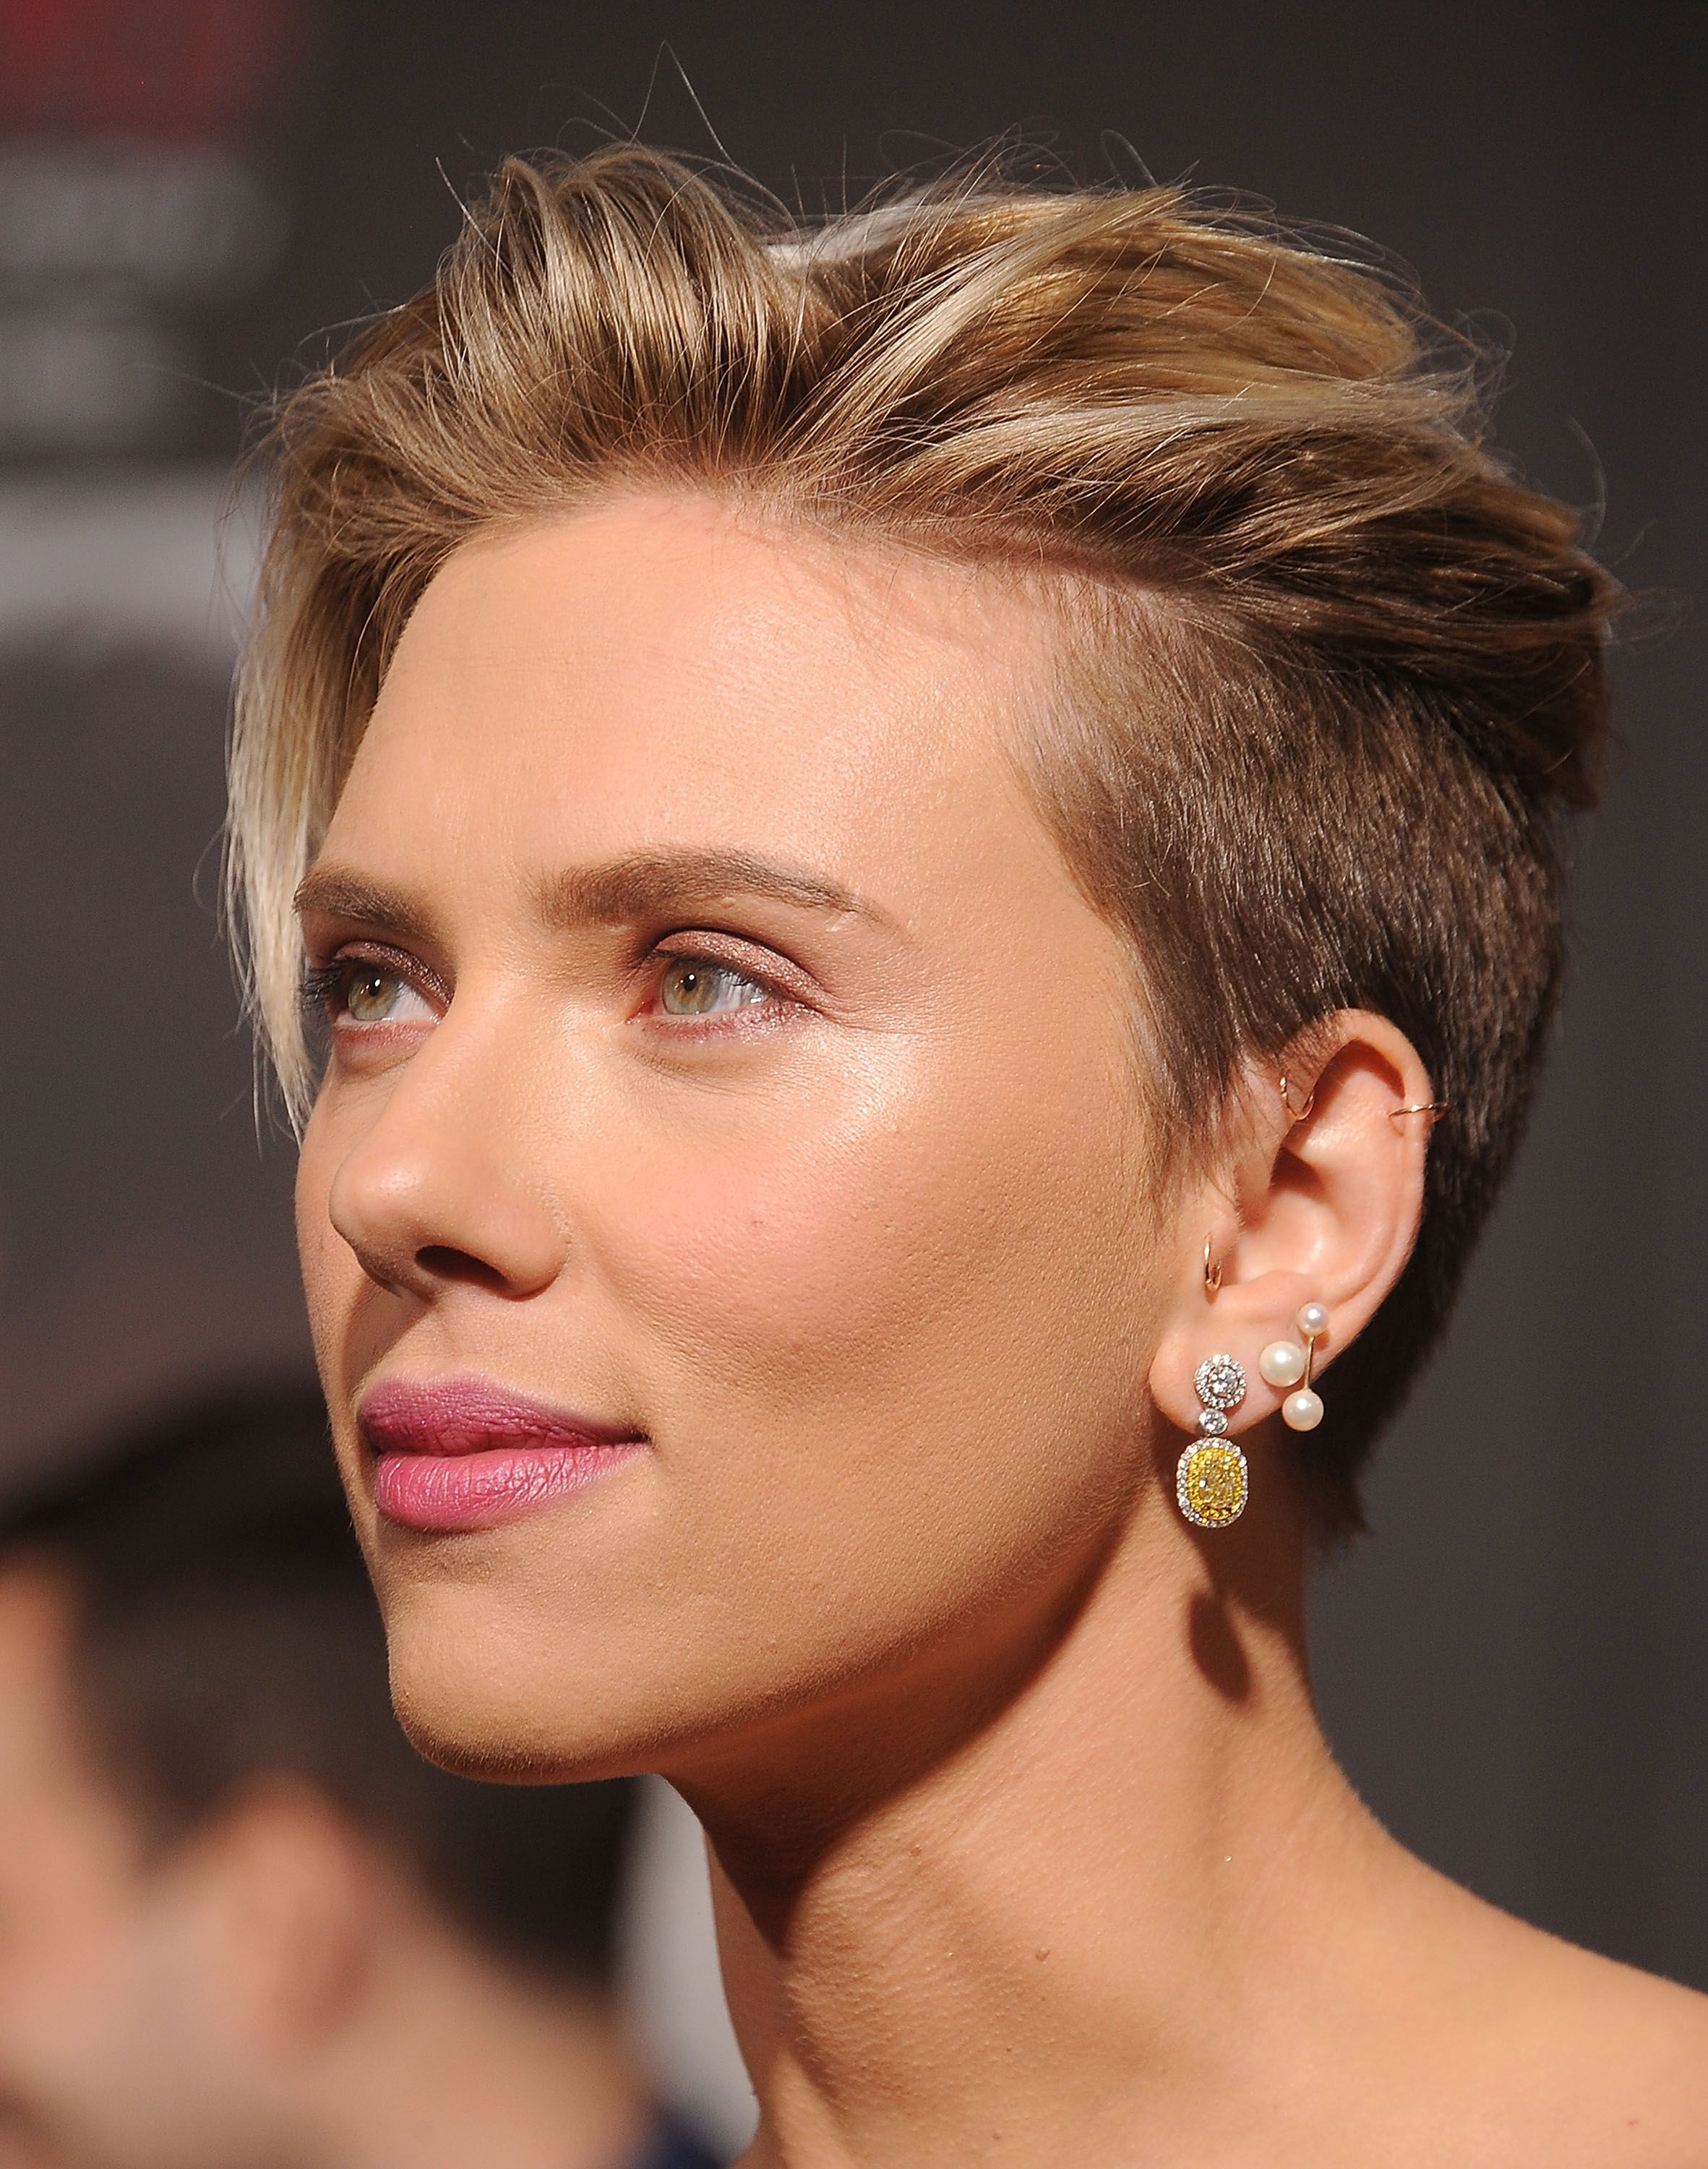 30 Best Celebrity Haircuts - Celebrity Hair Makeovers ...